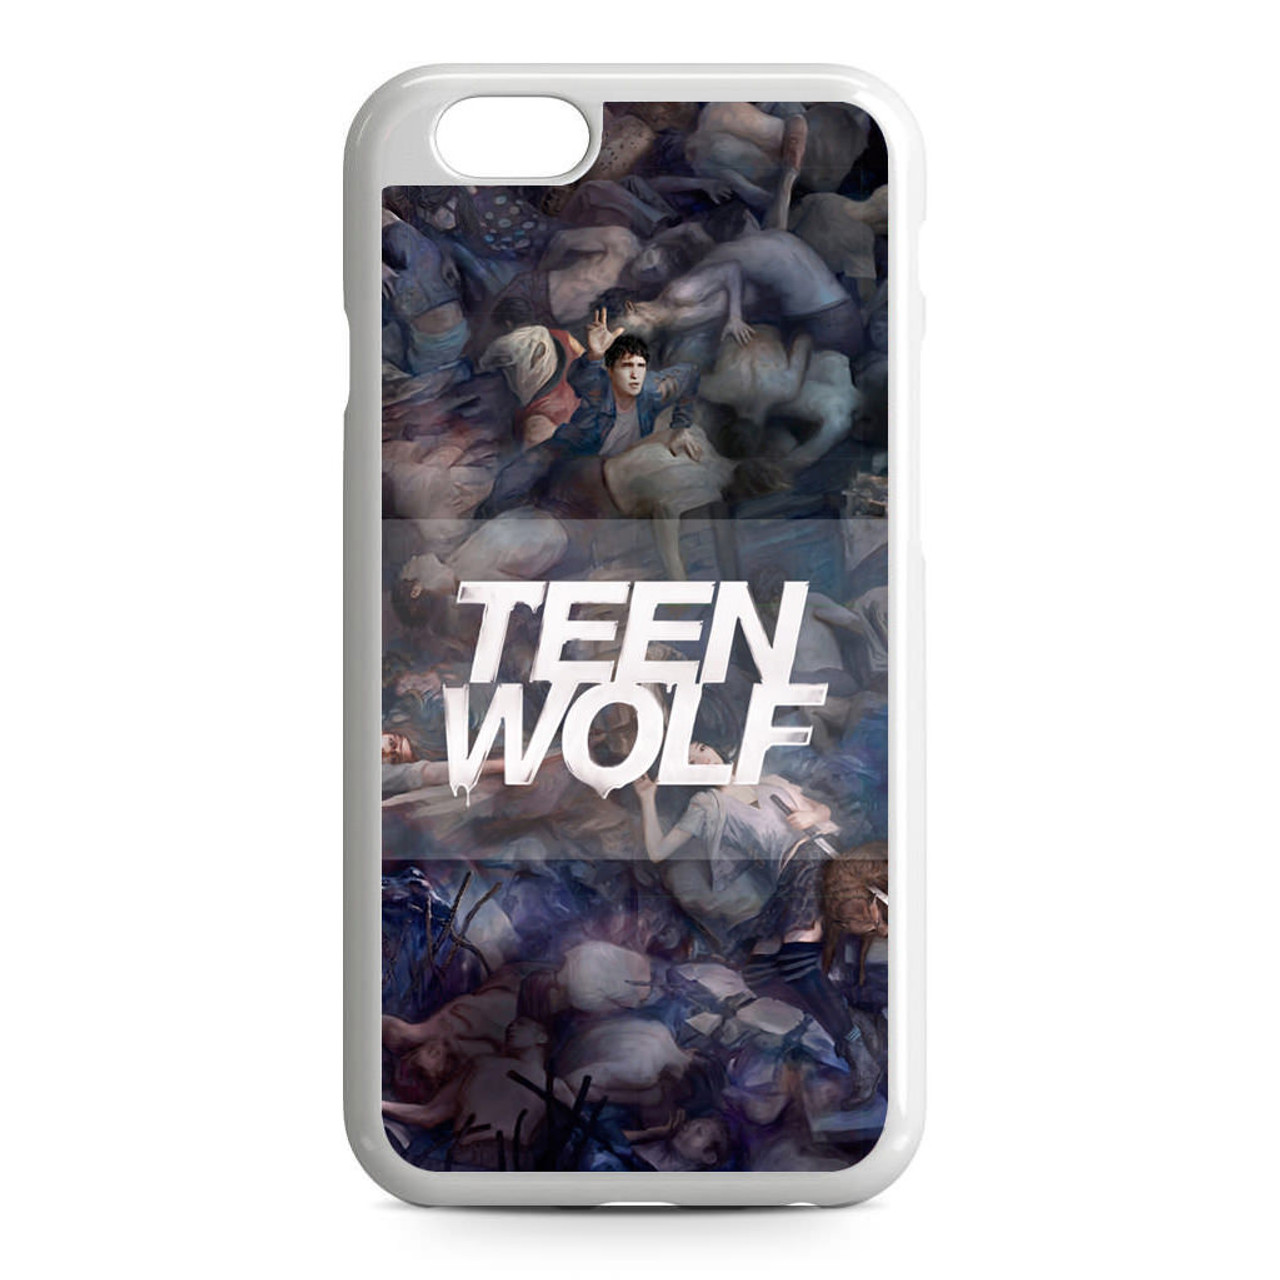 Teen Wolf Sesion 5 iPhone 6/6S Case